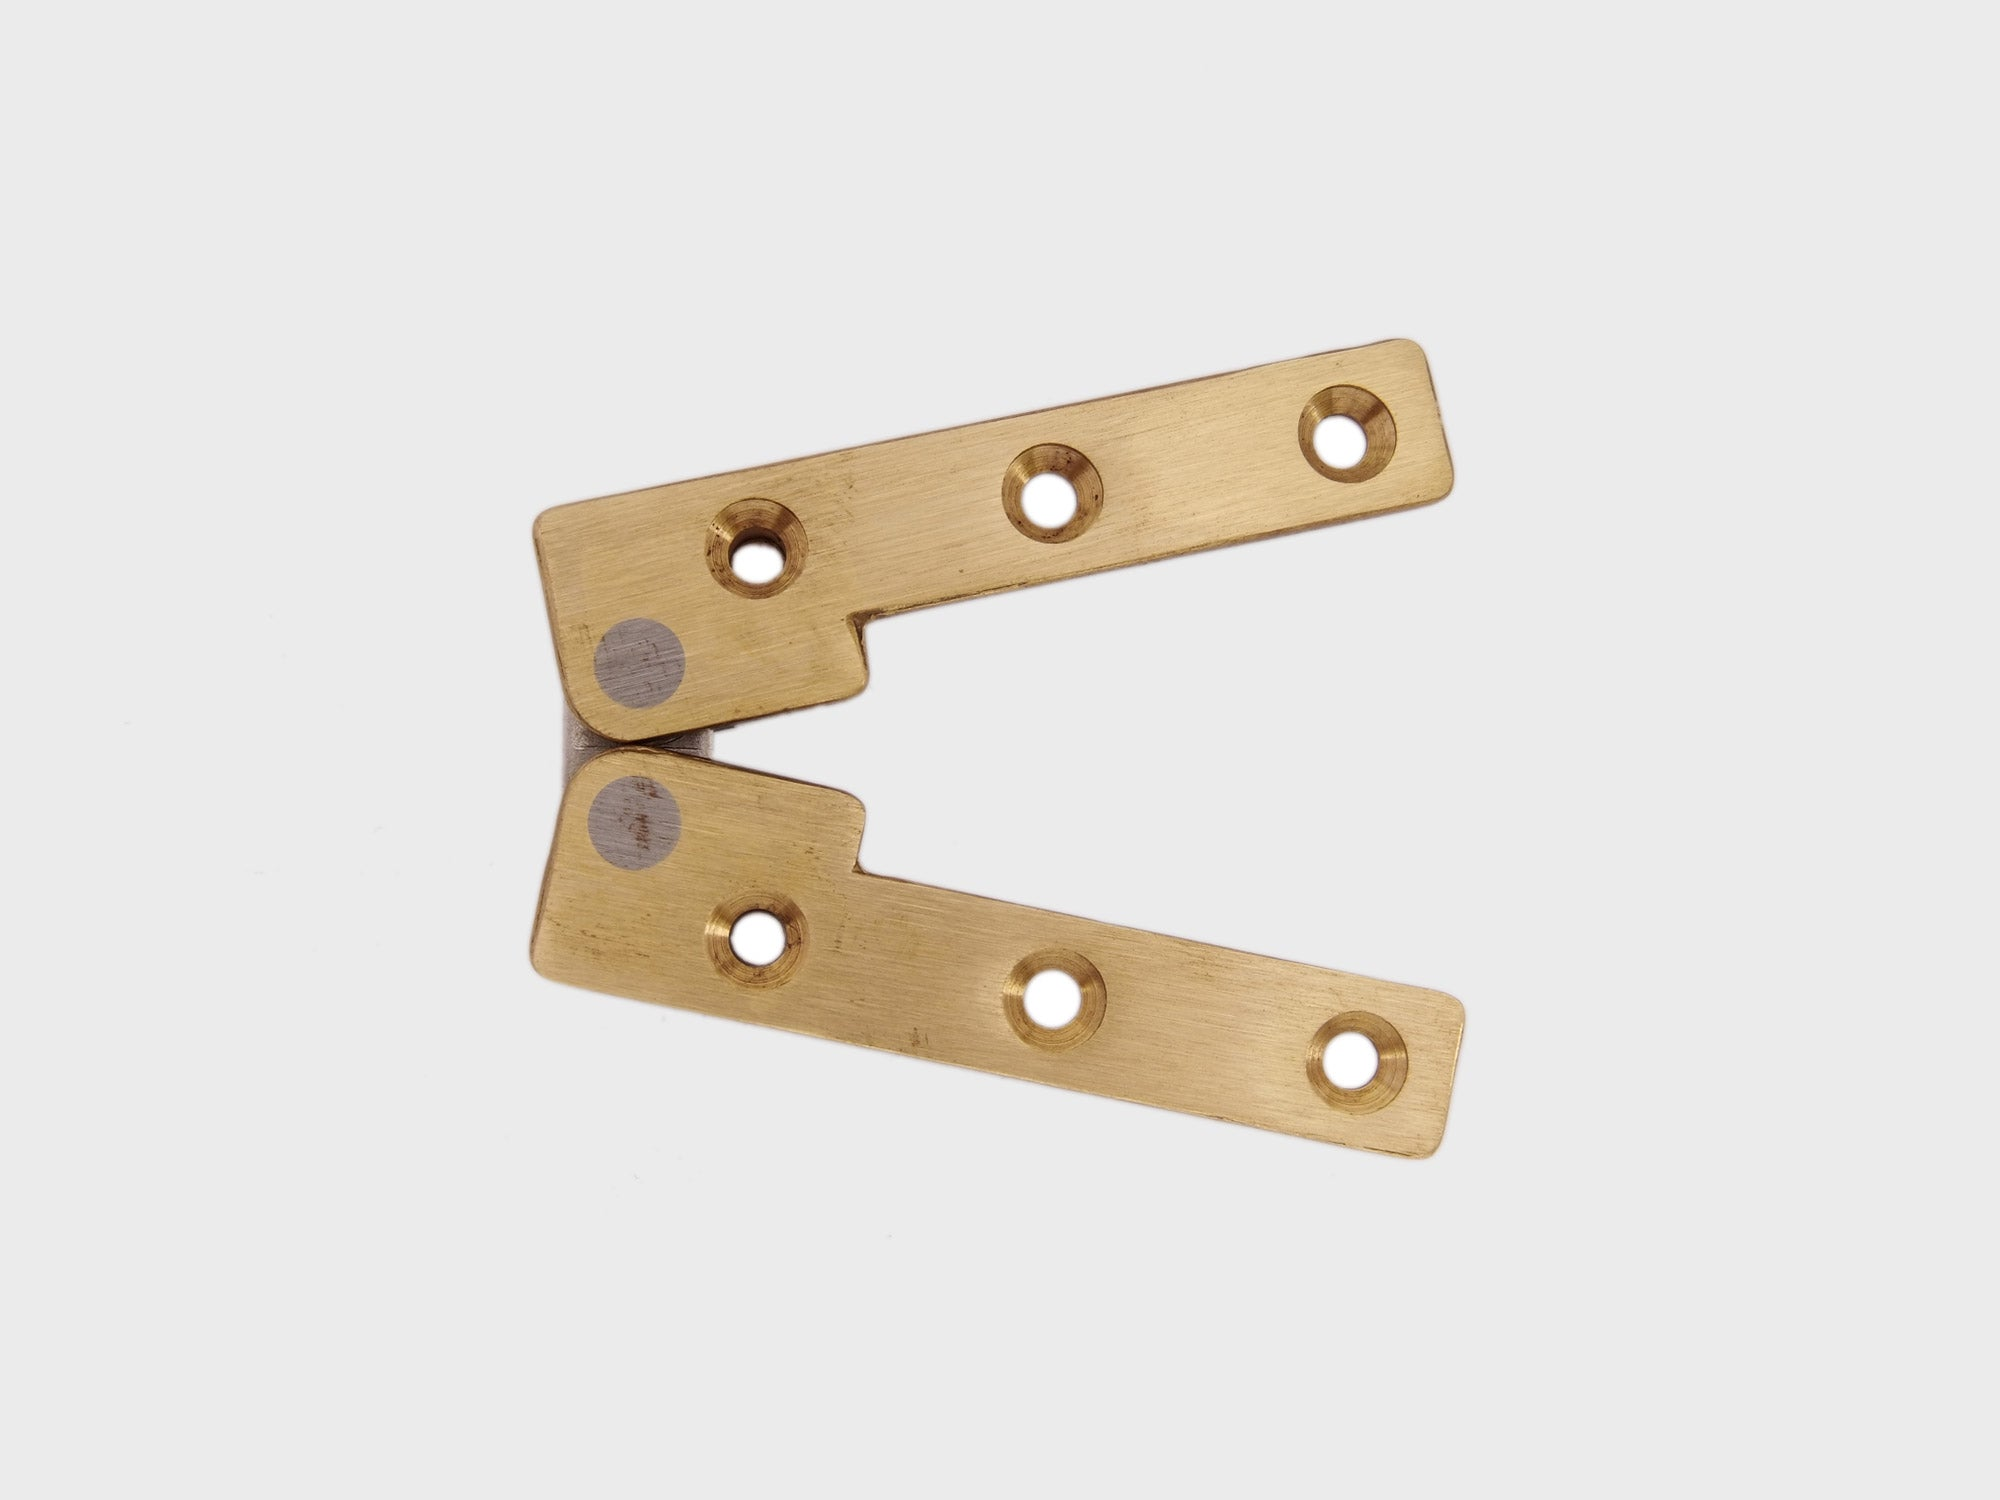 2228 Cardtable Hinge